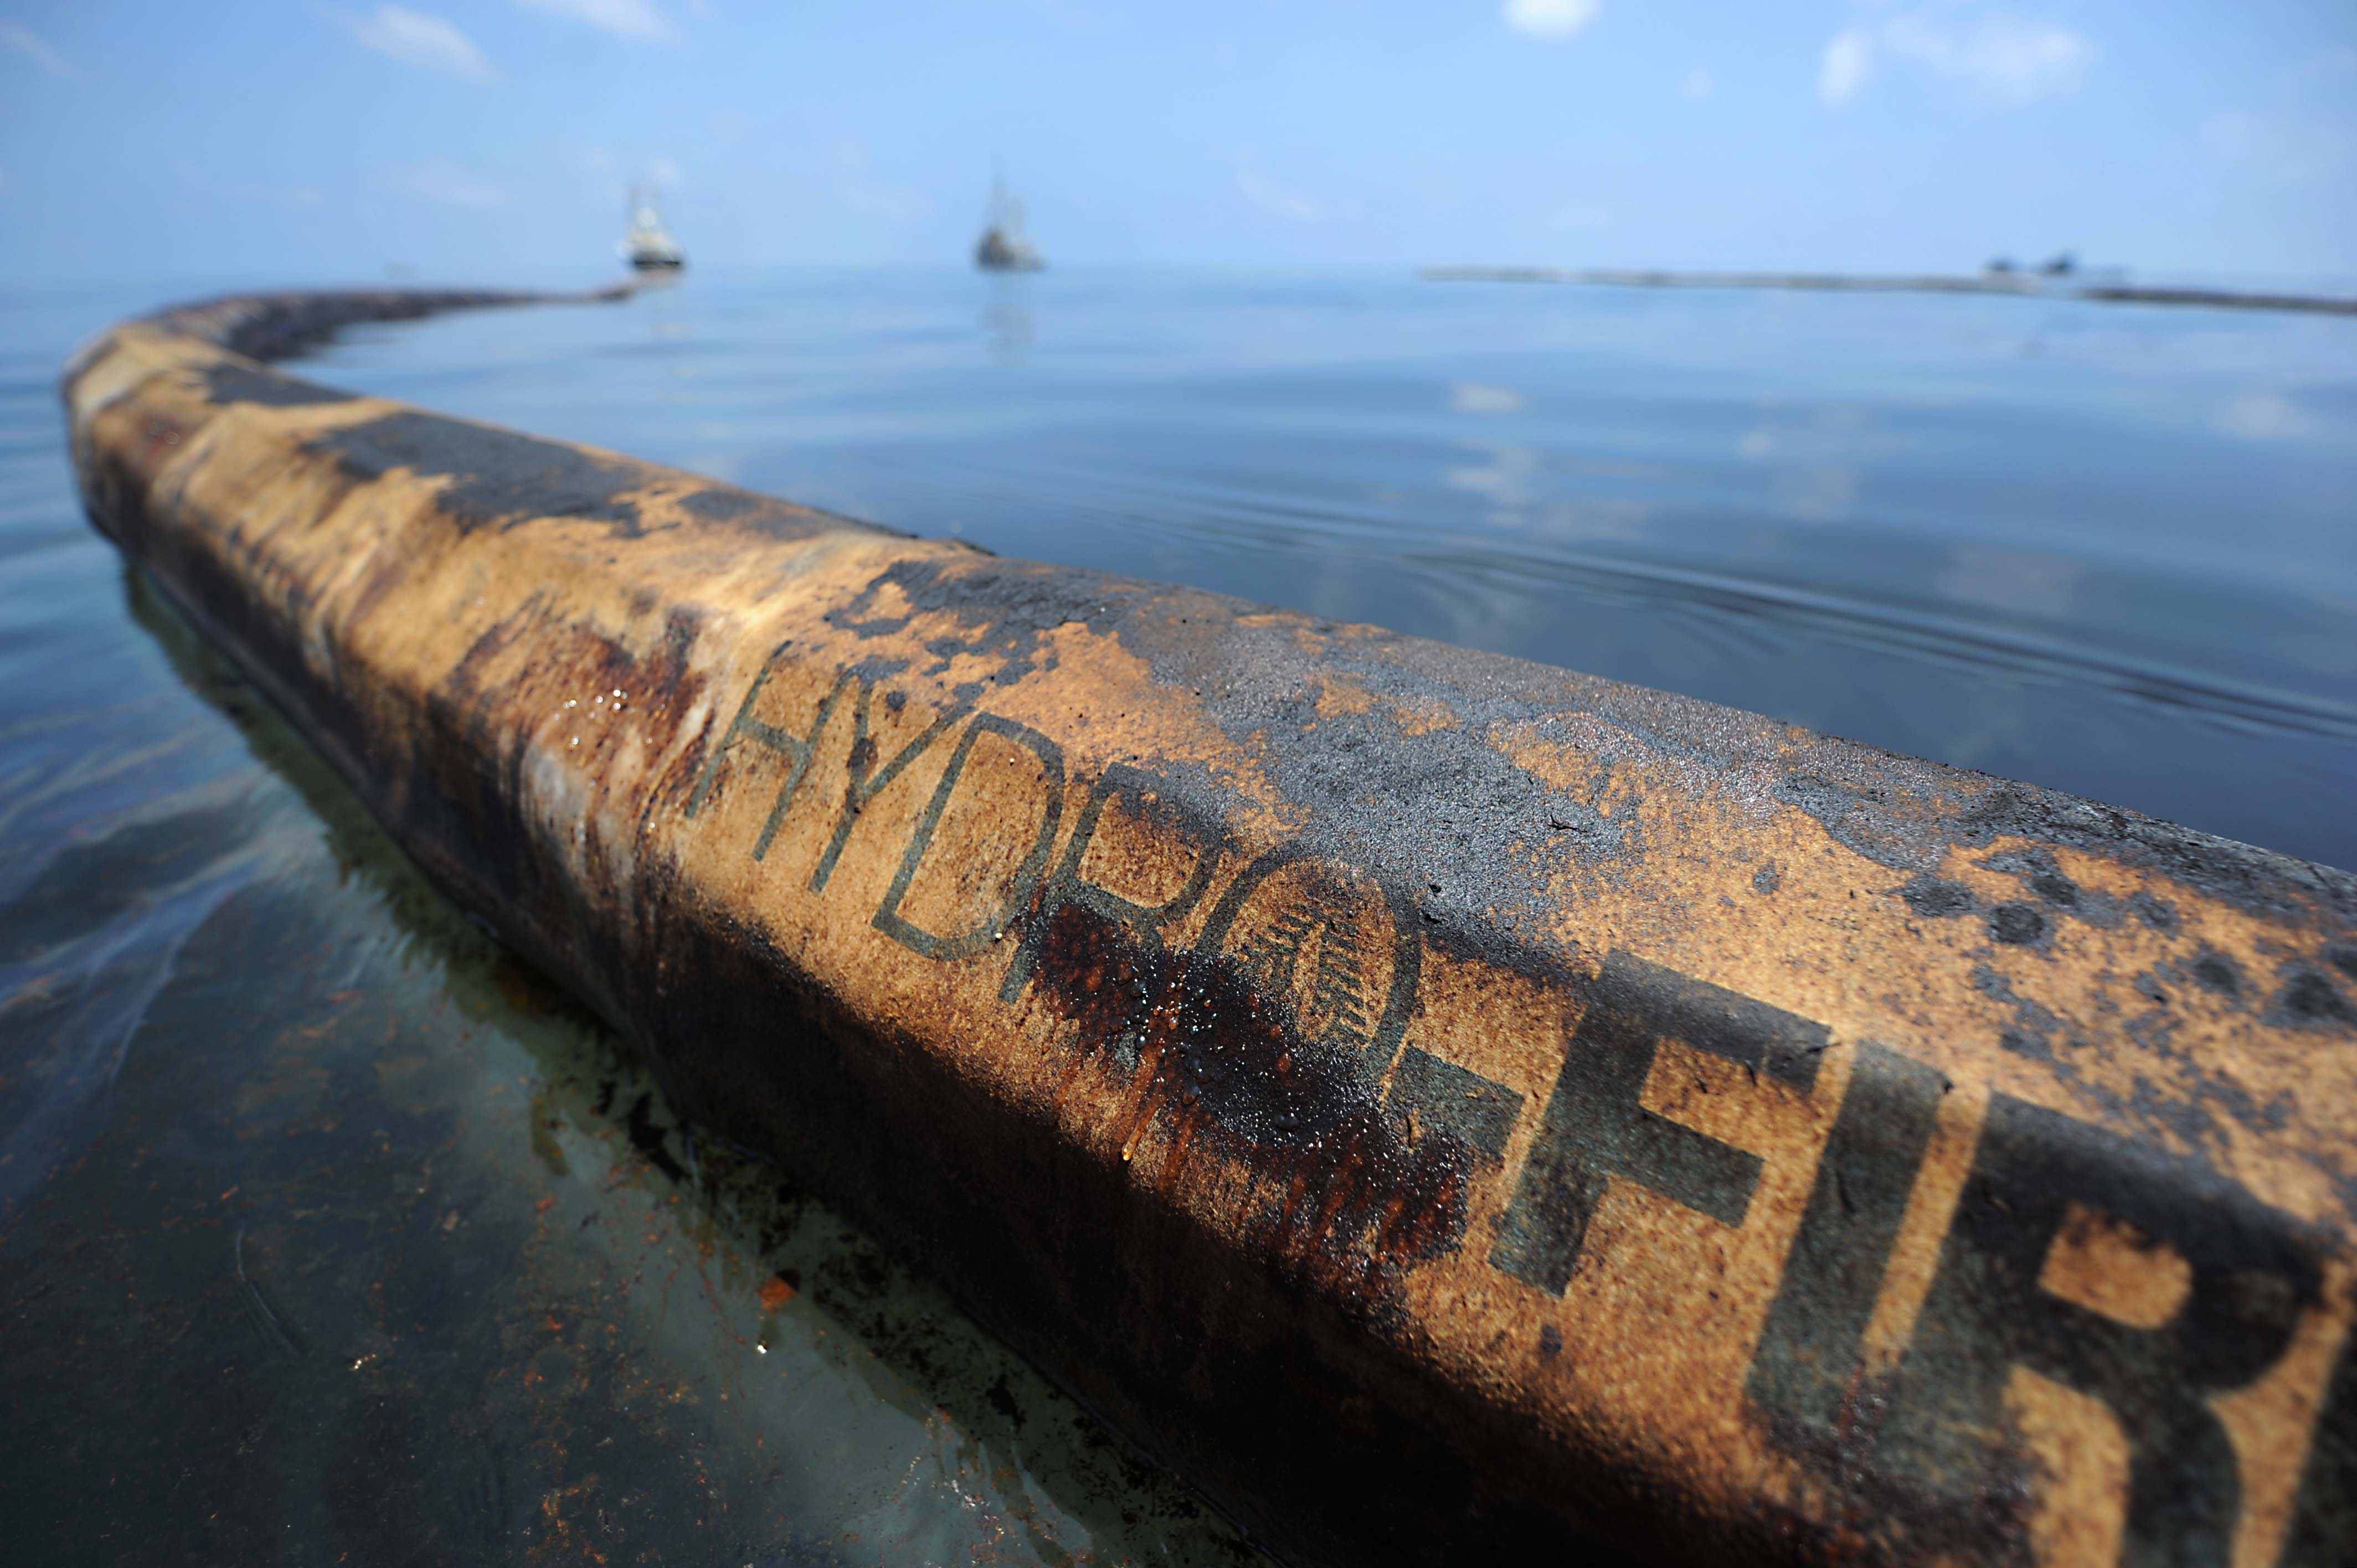 BP Remains in Troubled Waters Over Oil Spill - The Source